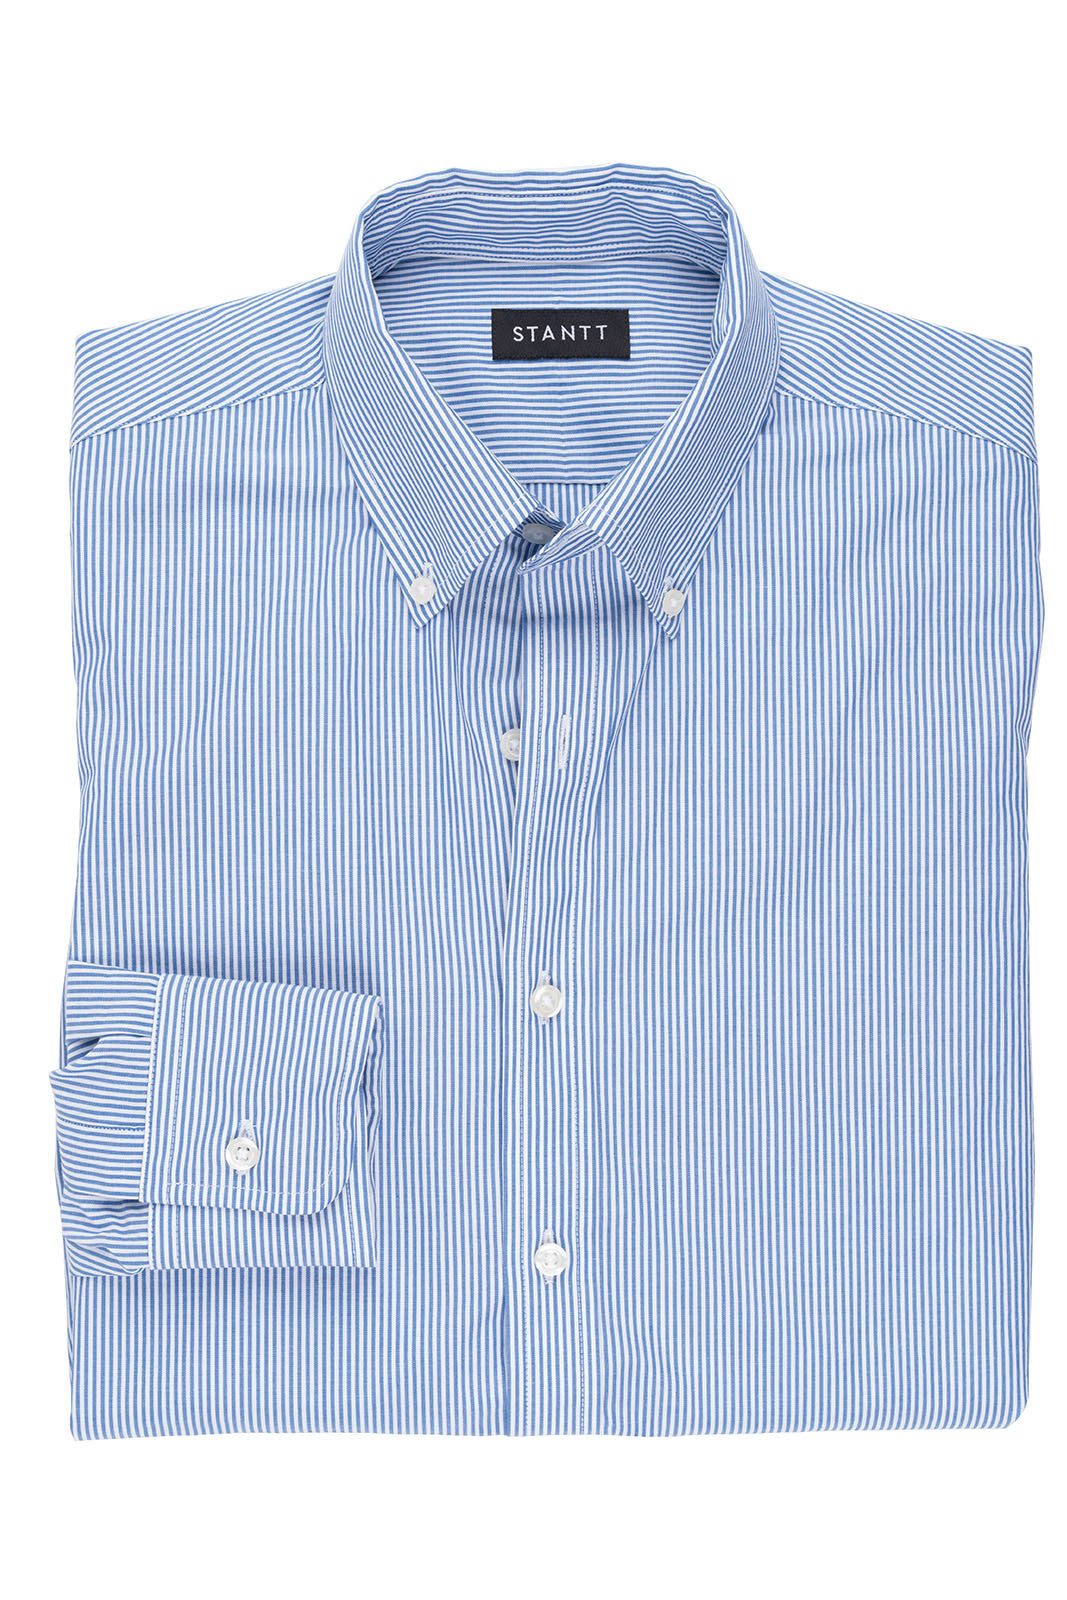 Navy Bengal Stripe: Button-Down Collar, Barrel Cuff